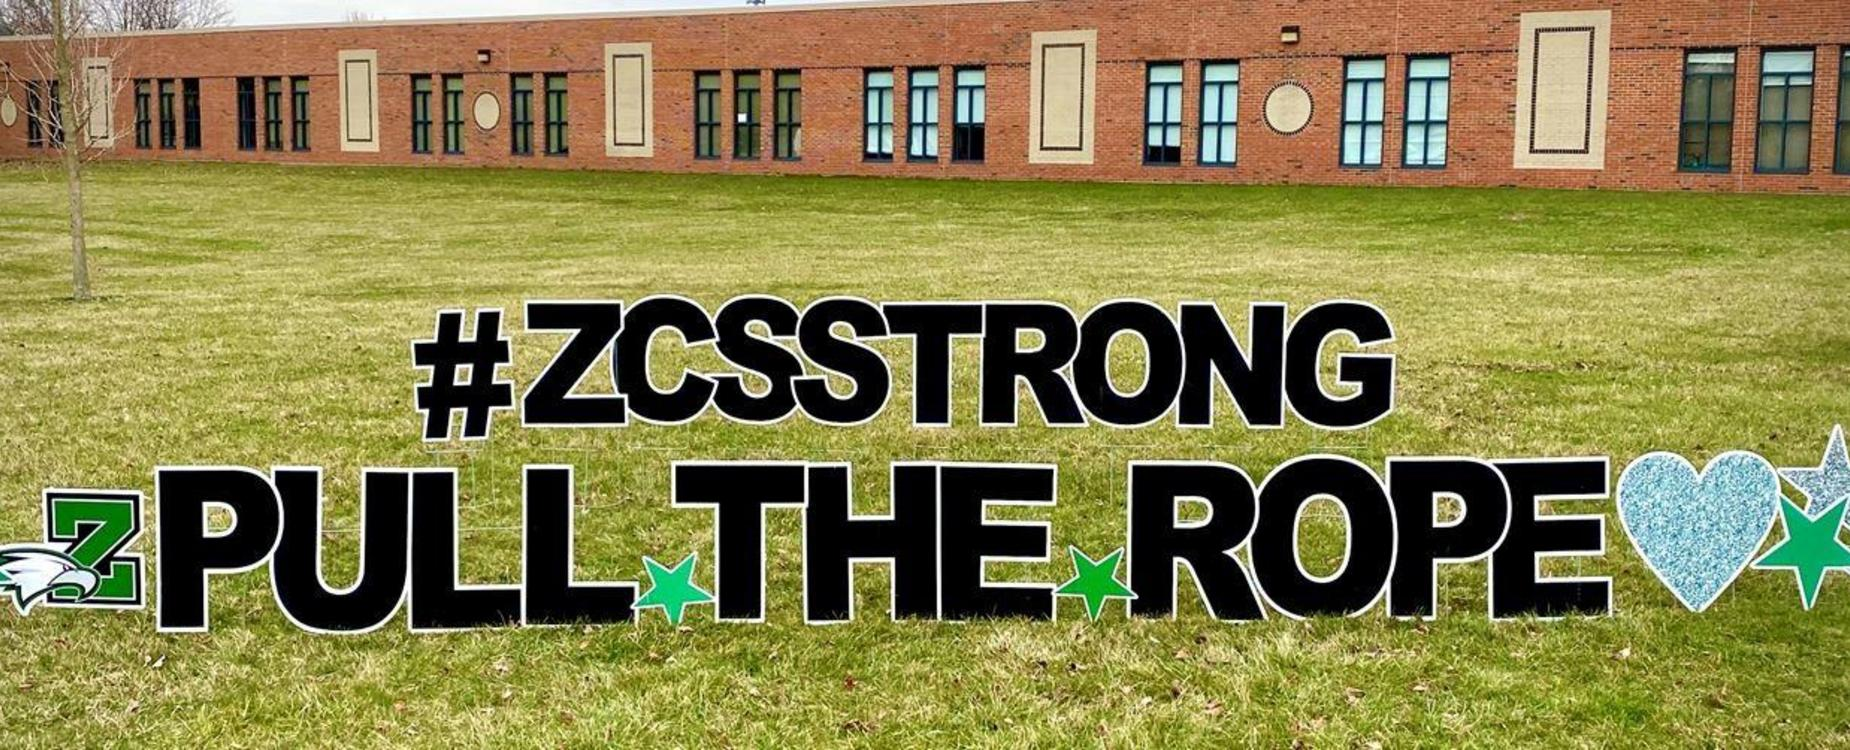 zcsstrong